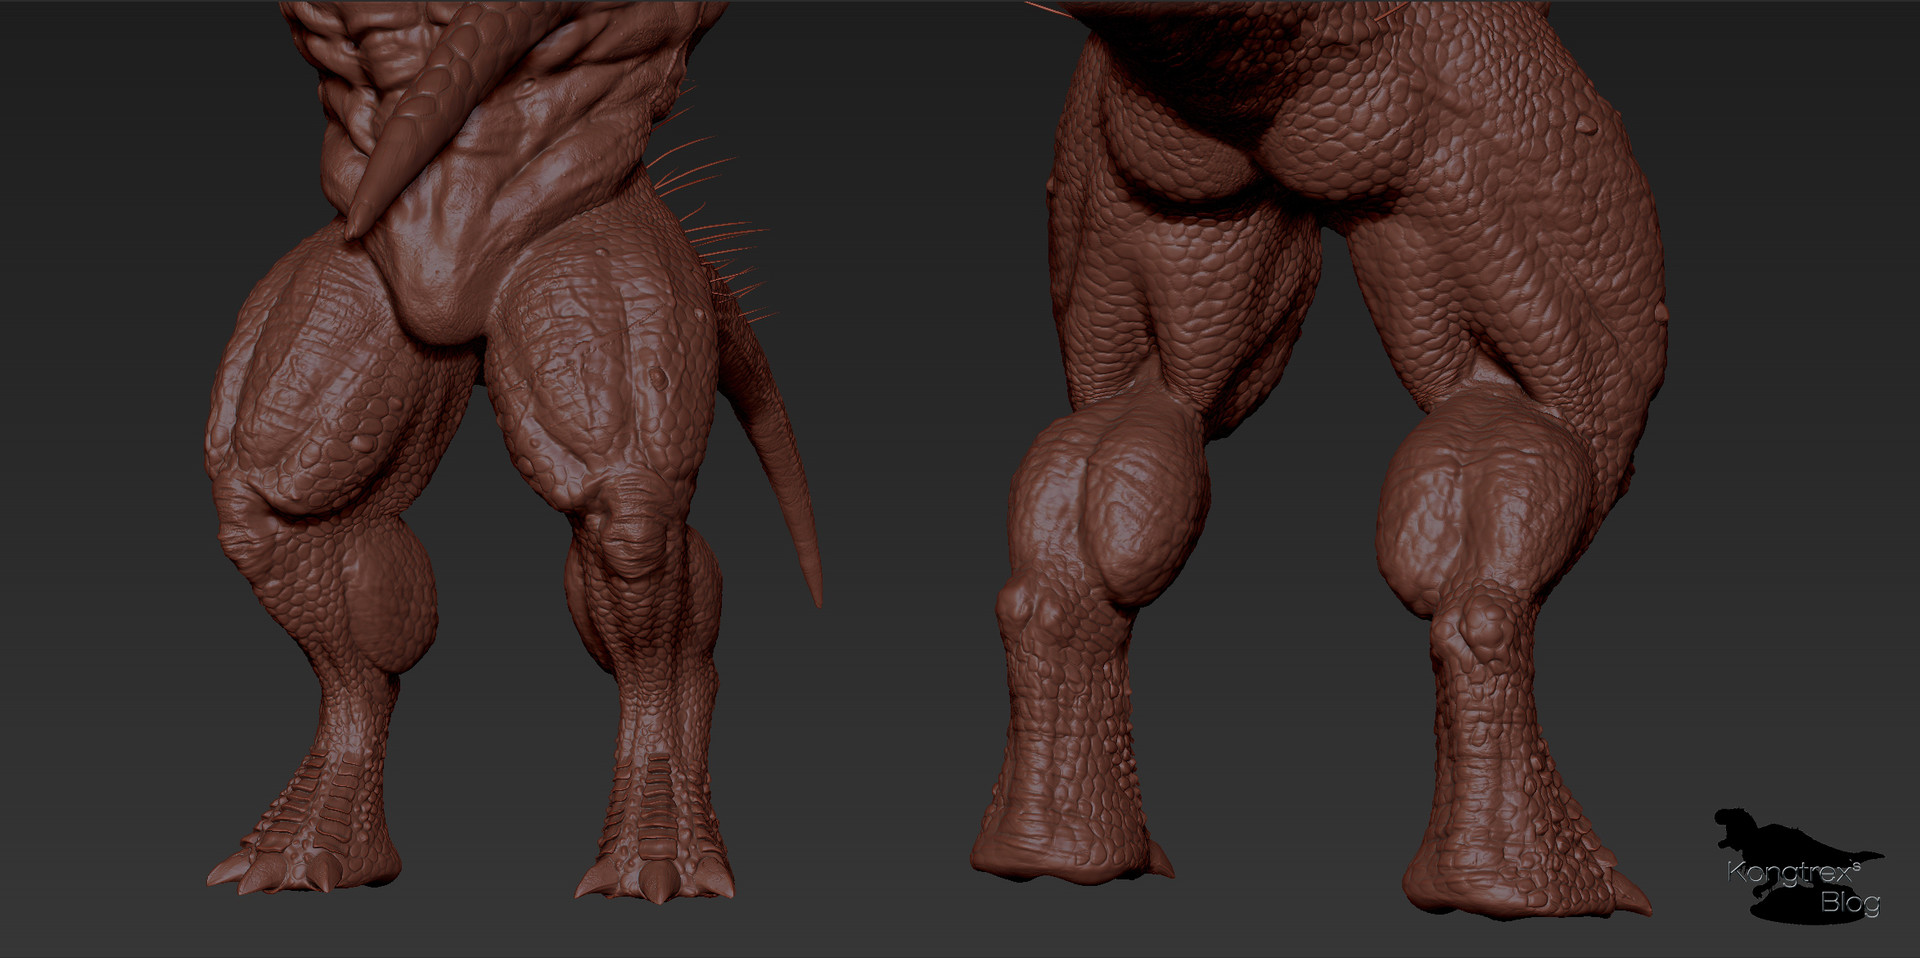 Jin kyeom kim zbrush document3